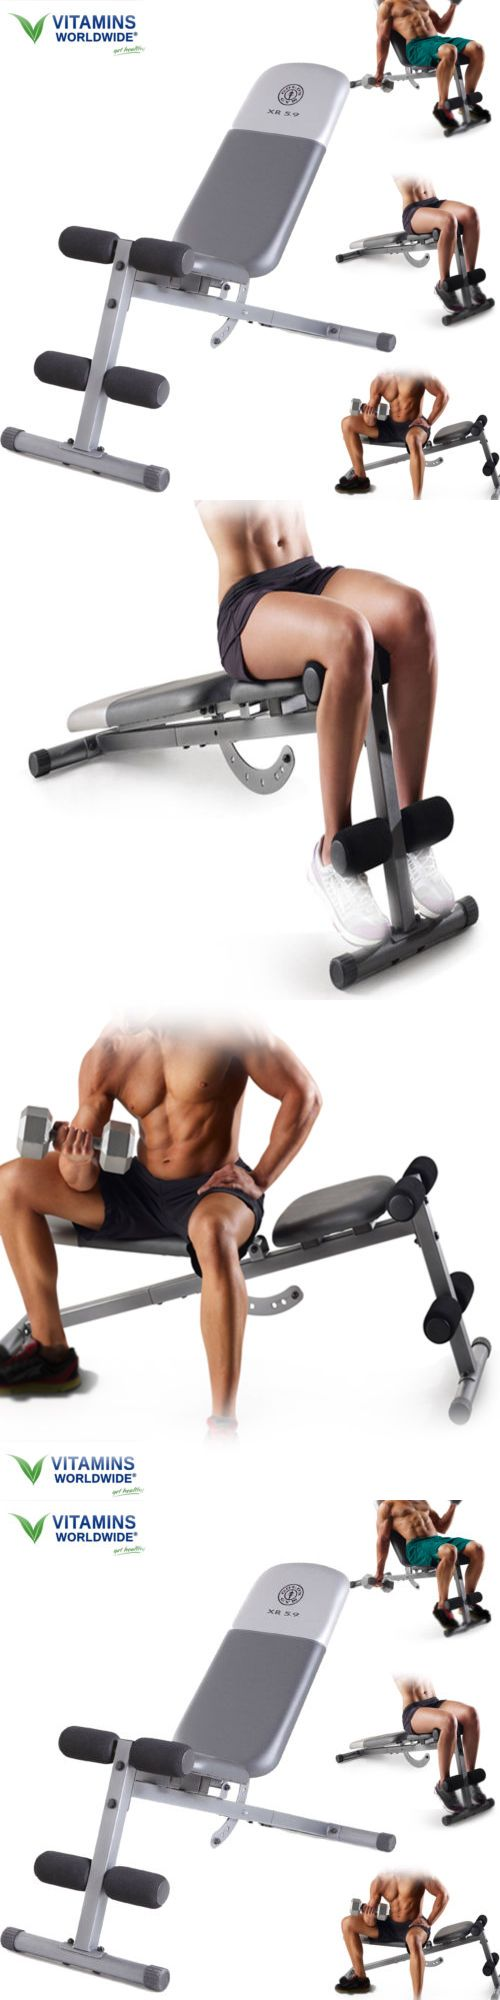 Bench Press Abs Part - 37: Benches 15281: Adjustable Weight Bench Slant Xr 5.9 Abs Workout Exercise  Incline Flat Press -